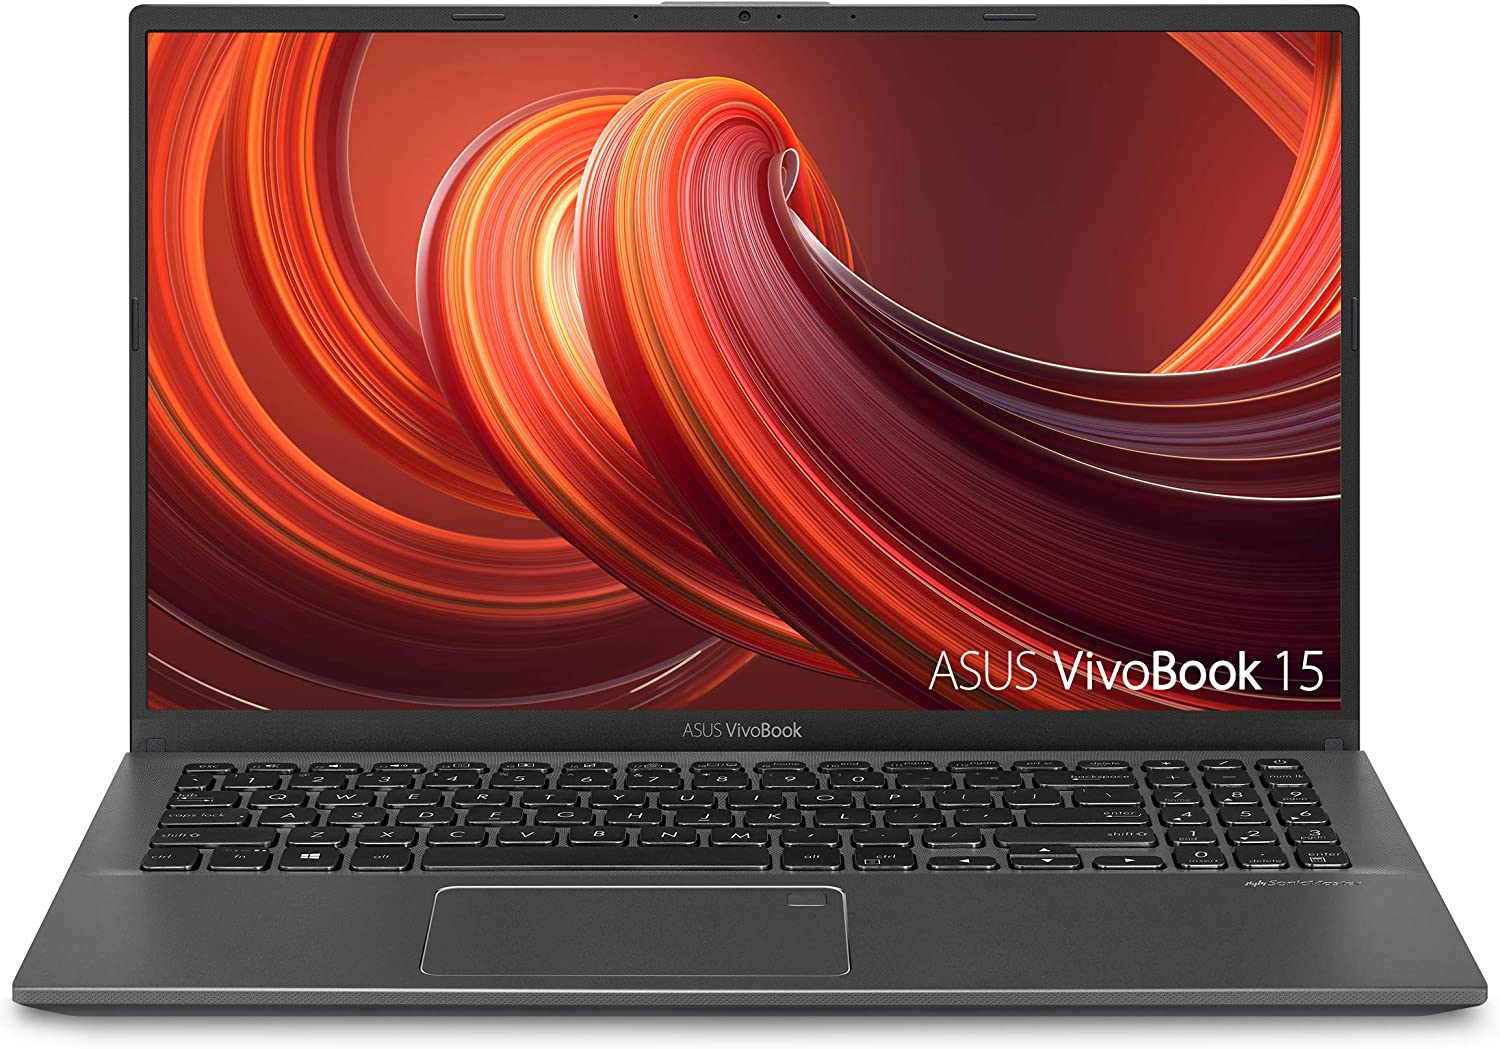 10 Best Laptop For Teenager Under 500 In 2021 [Buying Guide]